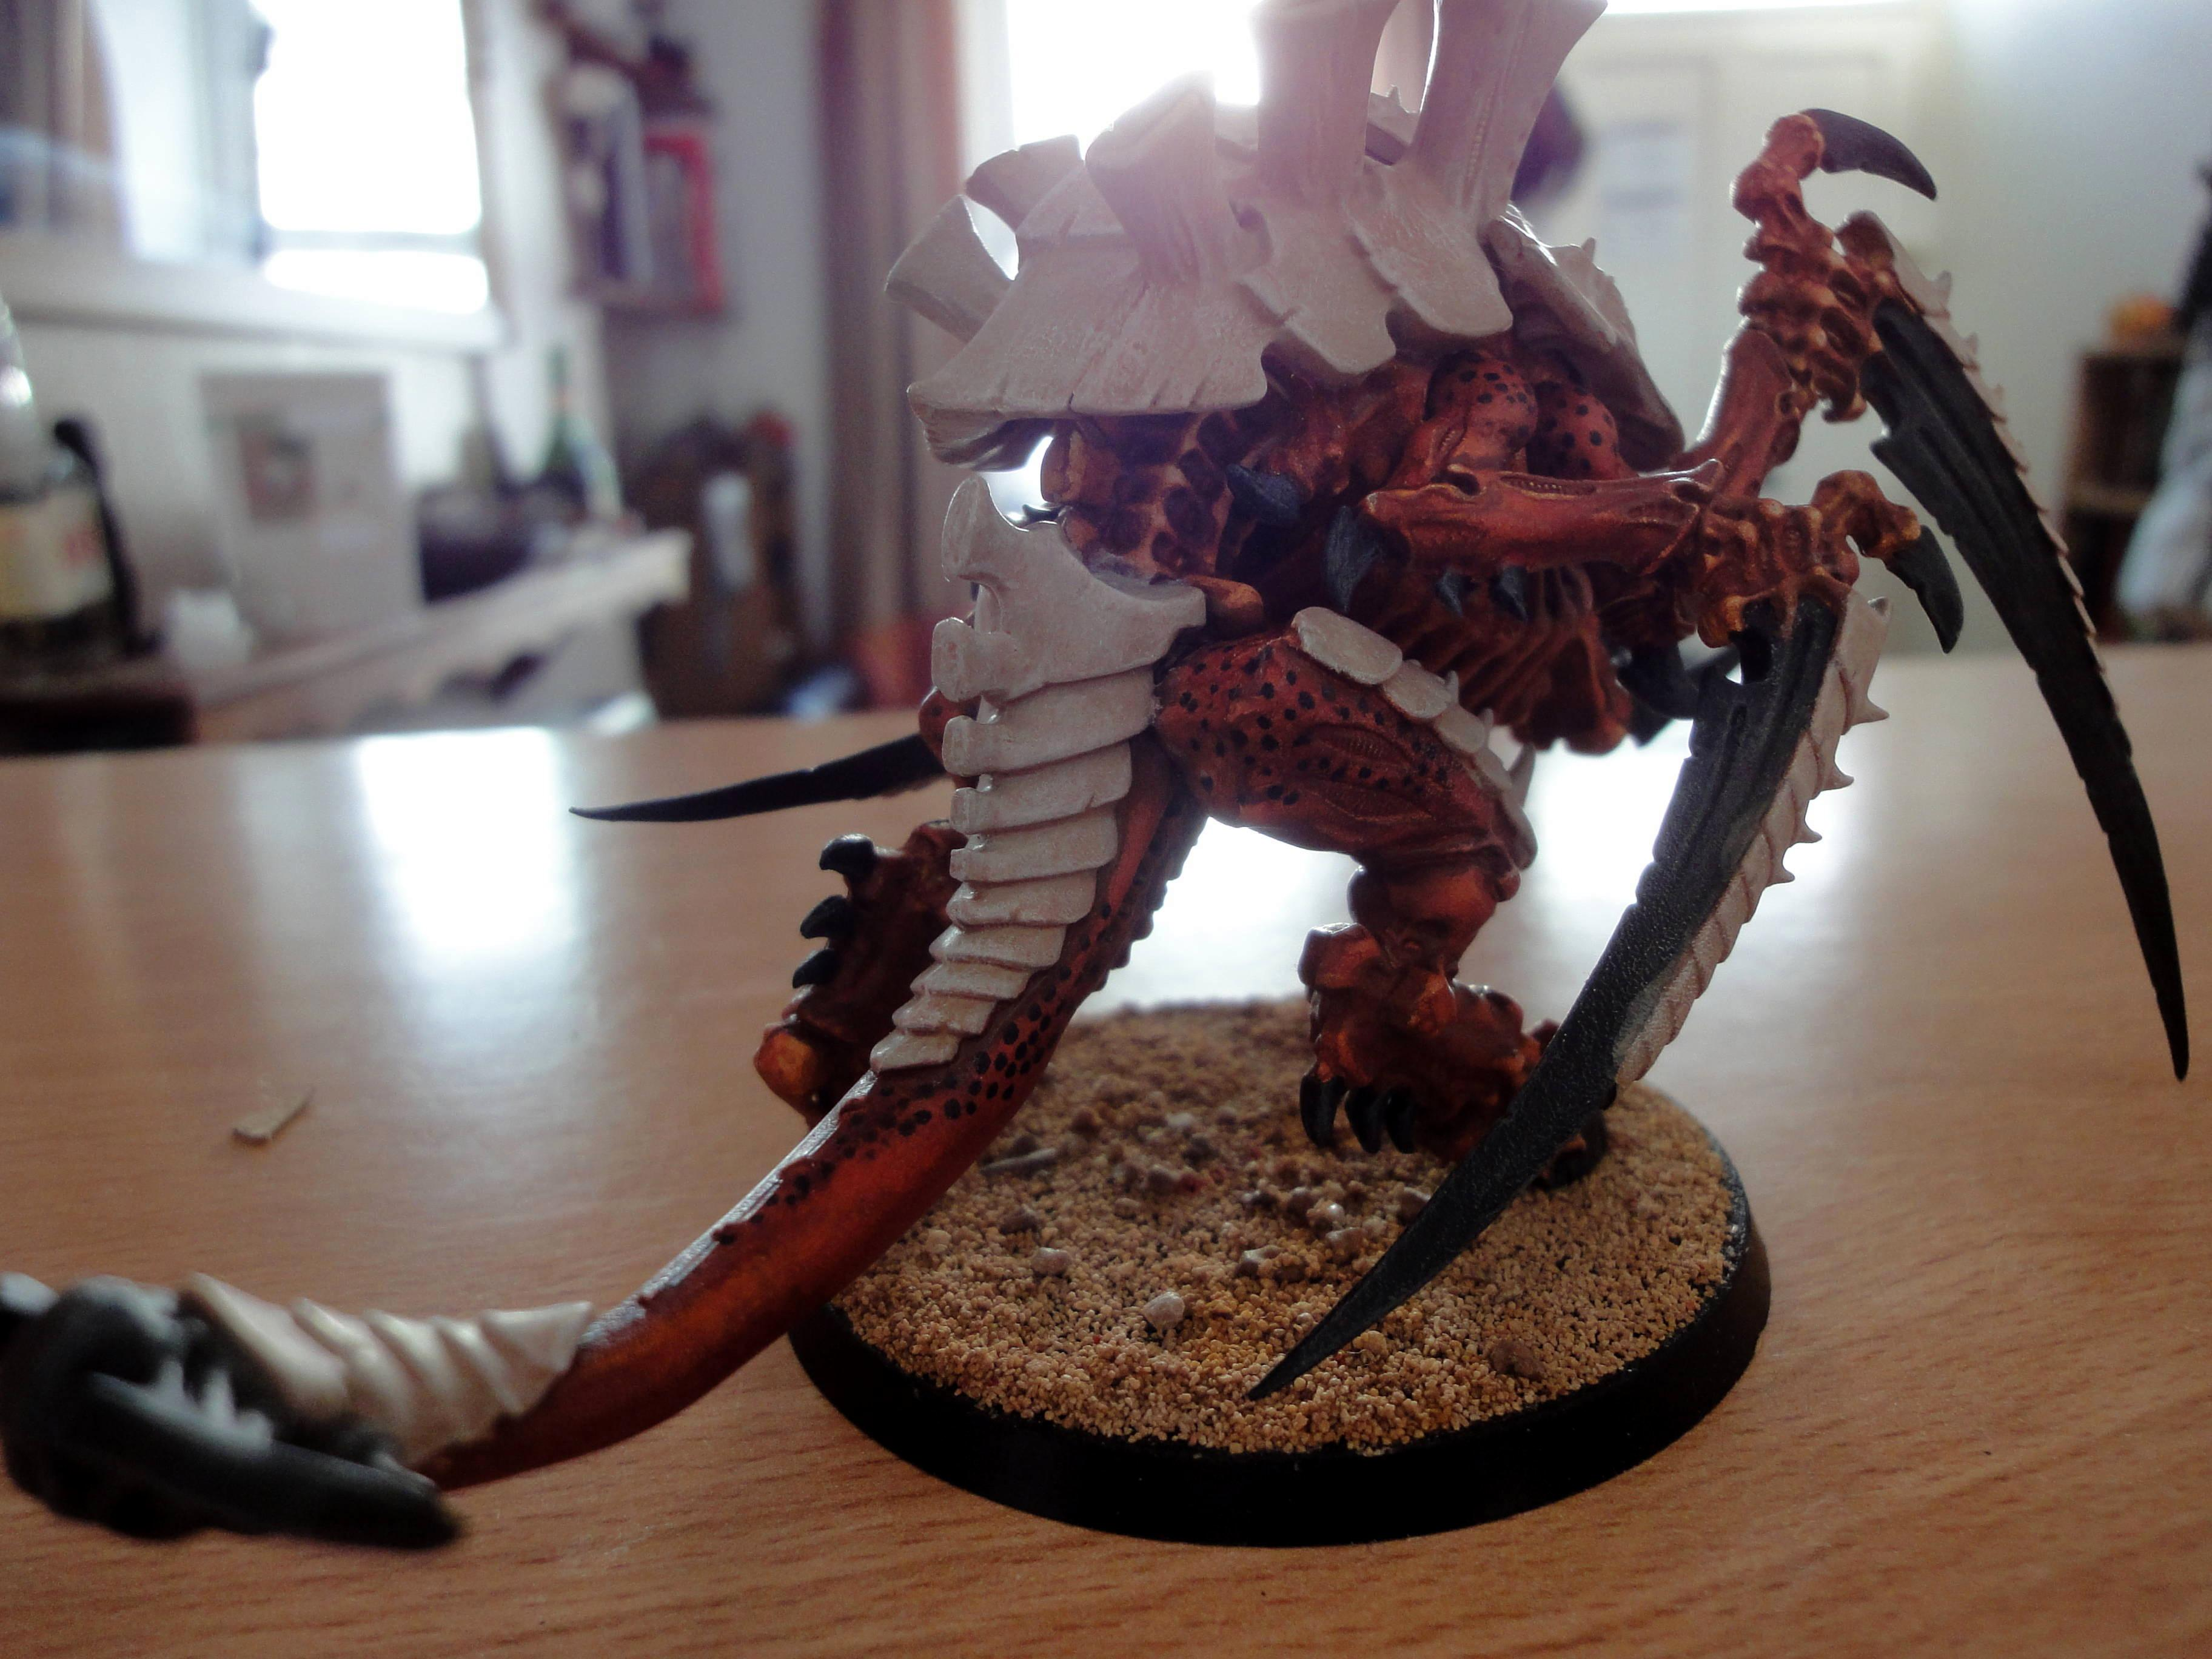 Armor, Carnifex, Chitin, Hive Fleet Cerberus, Magnet, Magnetised, Monster, Monsterous Creature, Talons, Tyranids